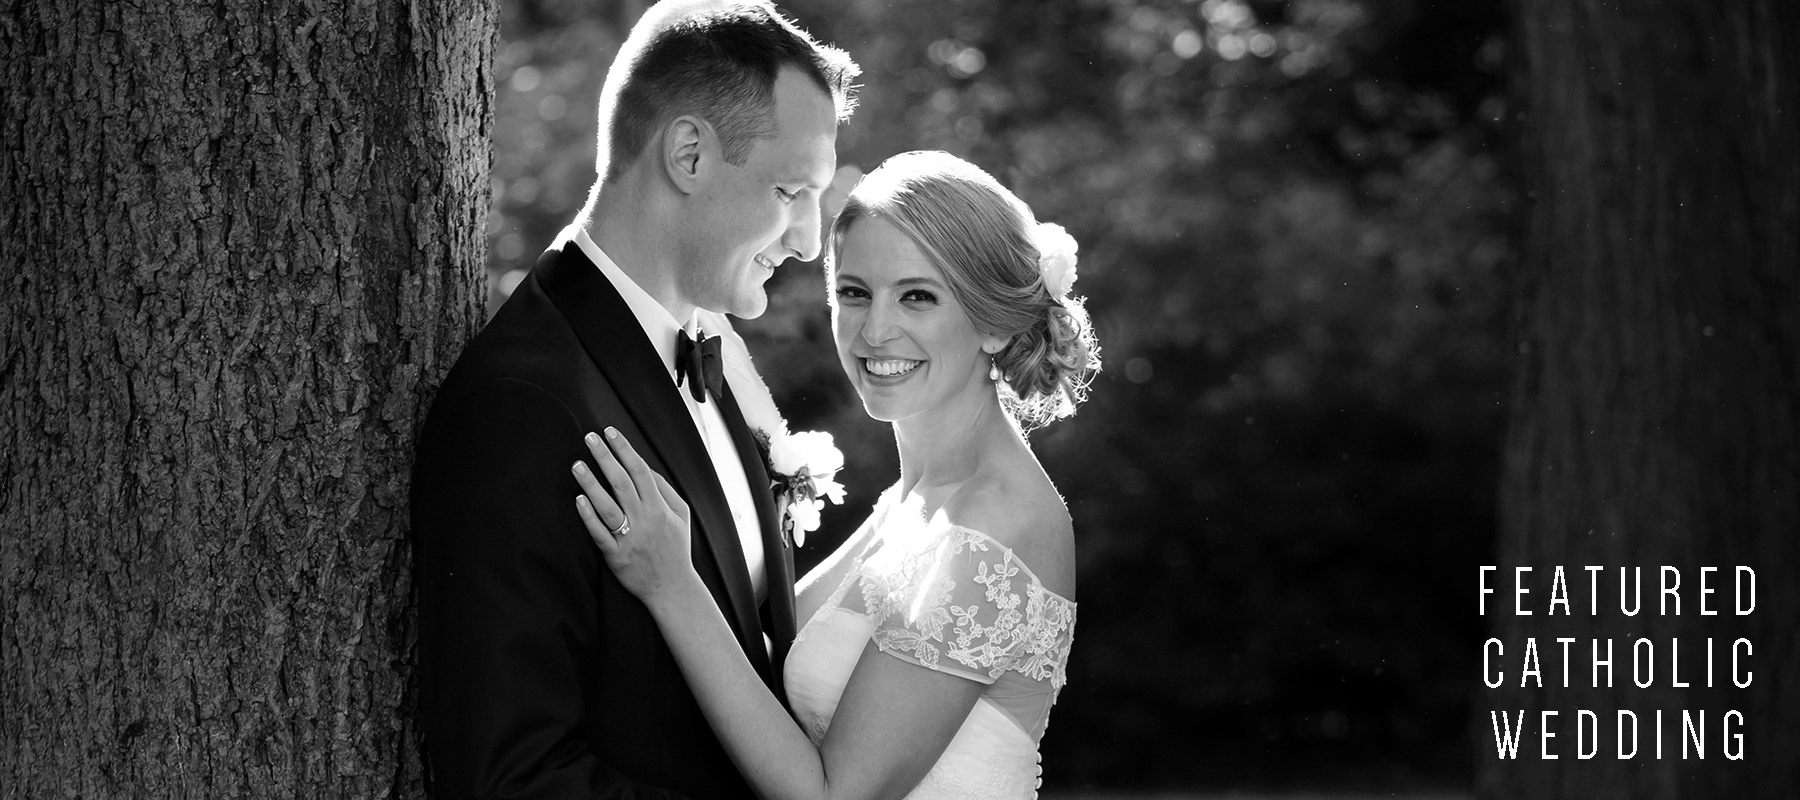 Featured Catholic Wedding by Peter Greeno Photography